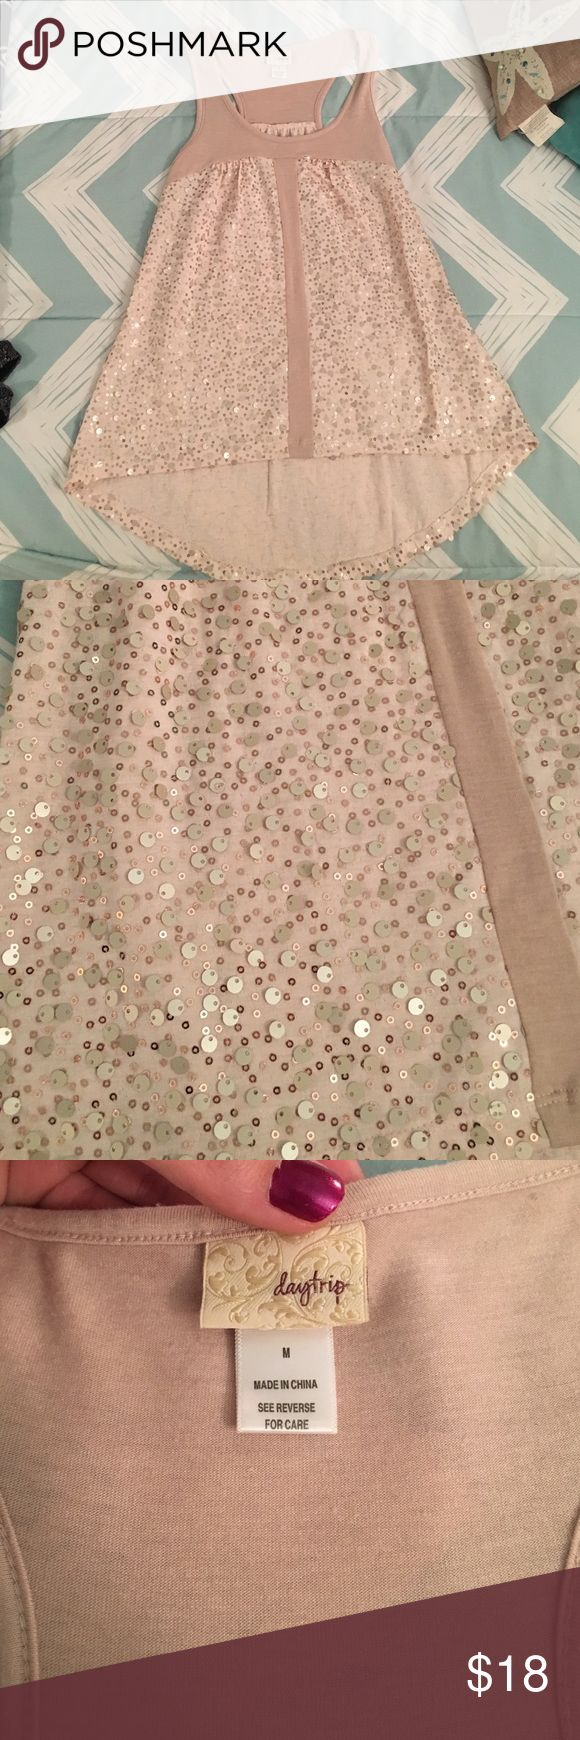 Daytrip sequin tank top  Worn twice. In wonderful condition. No flaws or defects. Cream racerback tank top with rose gold and cream sequins. Looks adorable under a cardigan. Not itchy at all Daytrip Tops Tank Tops